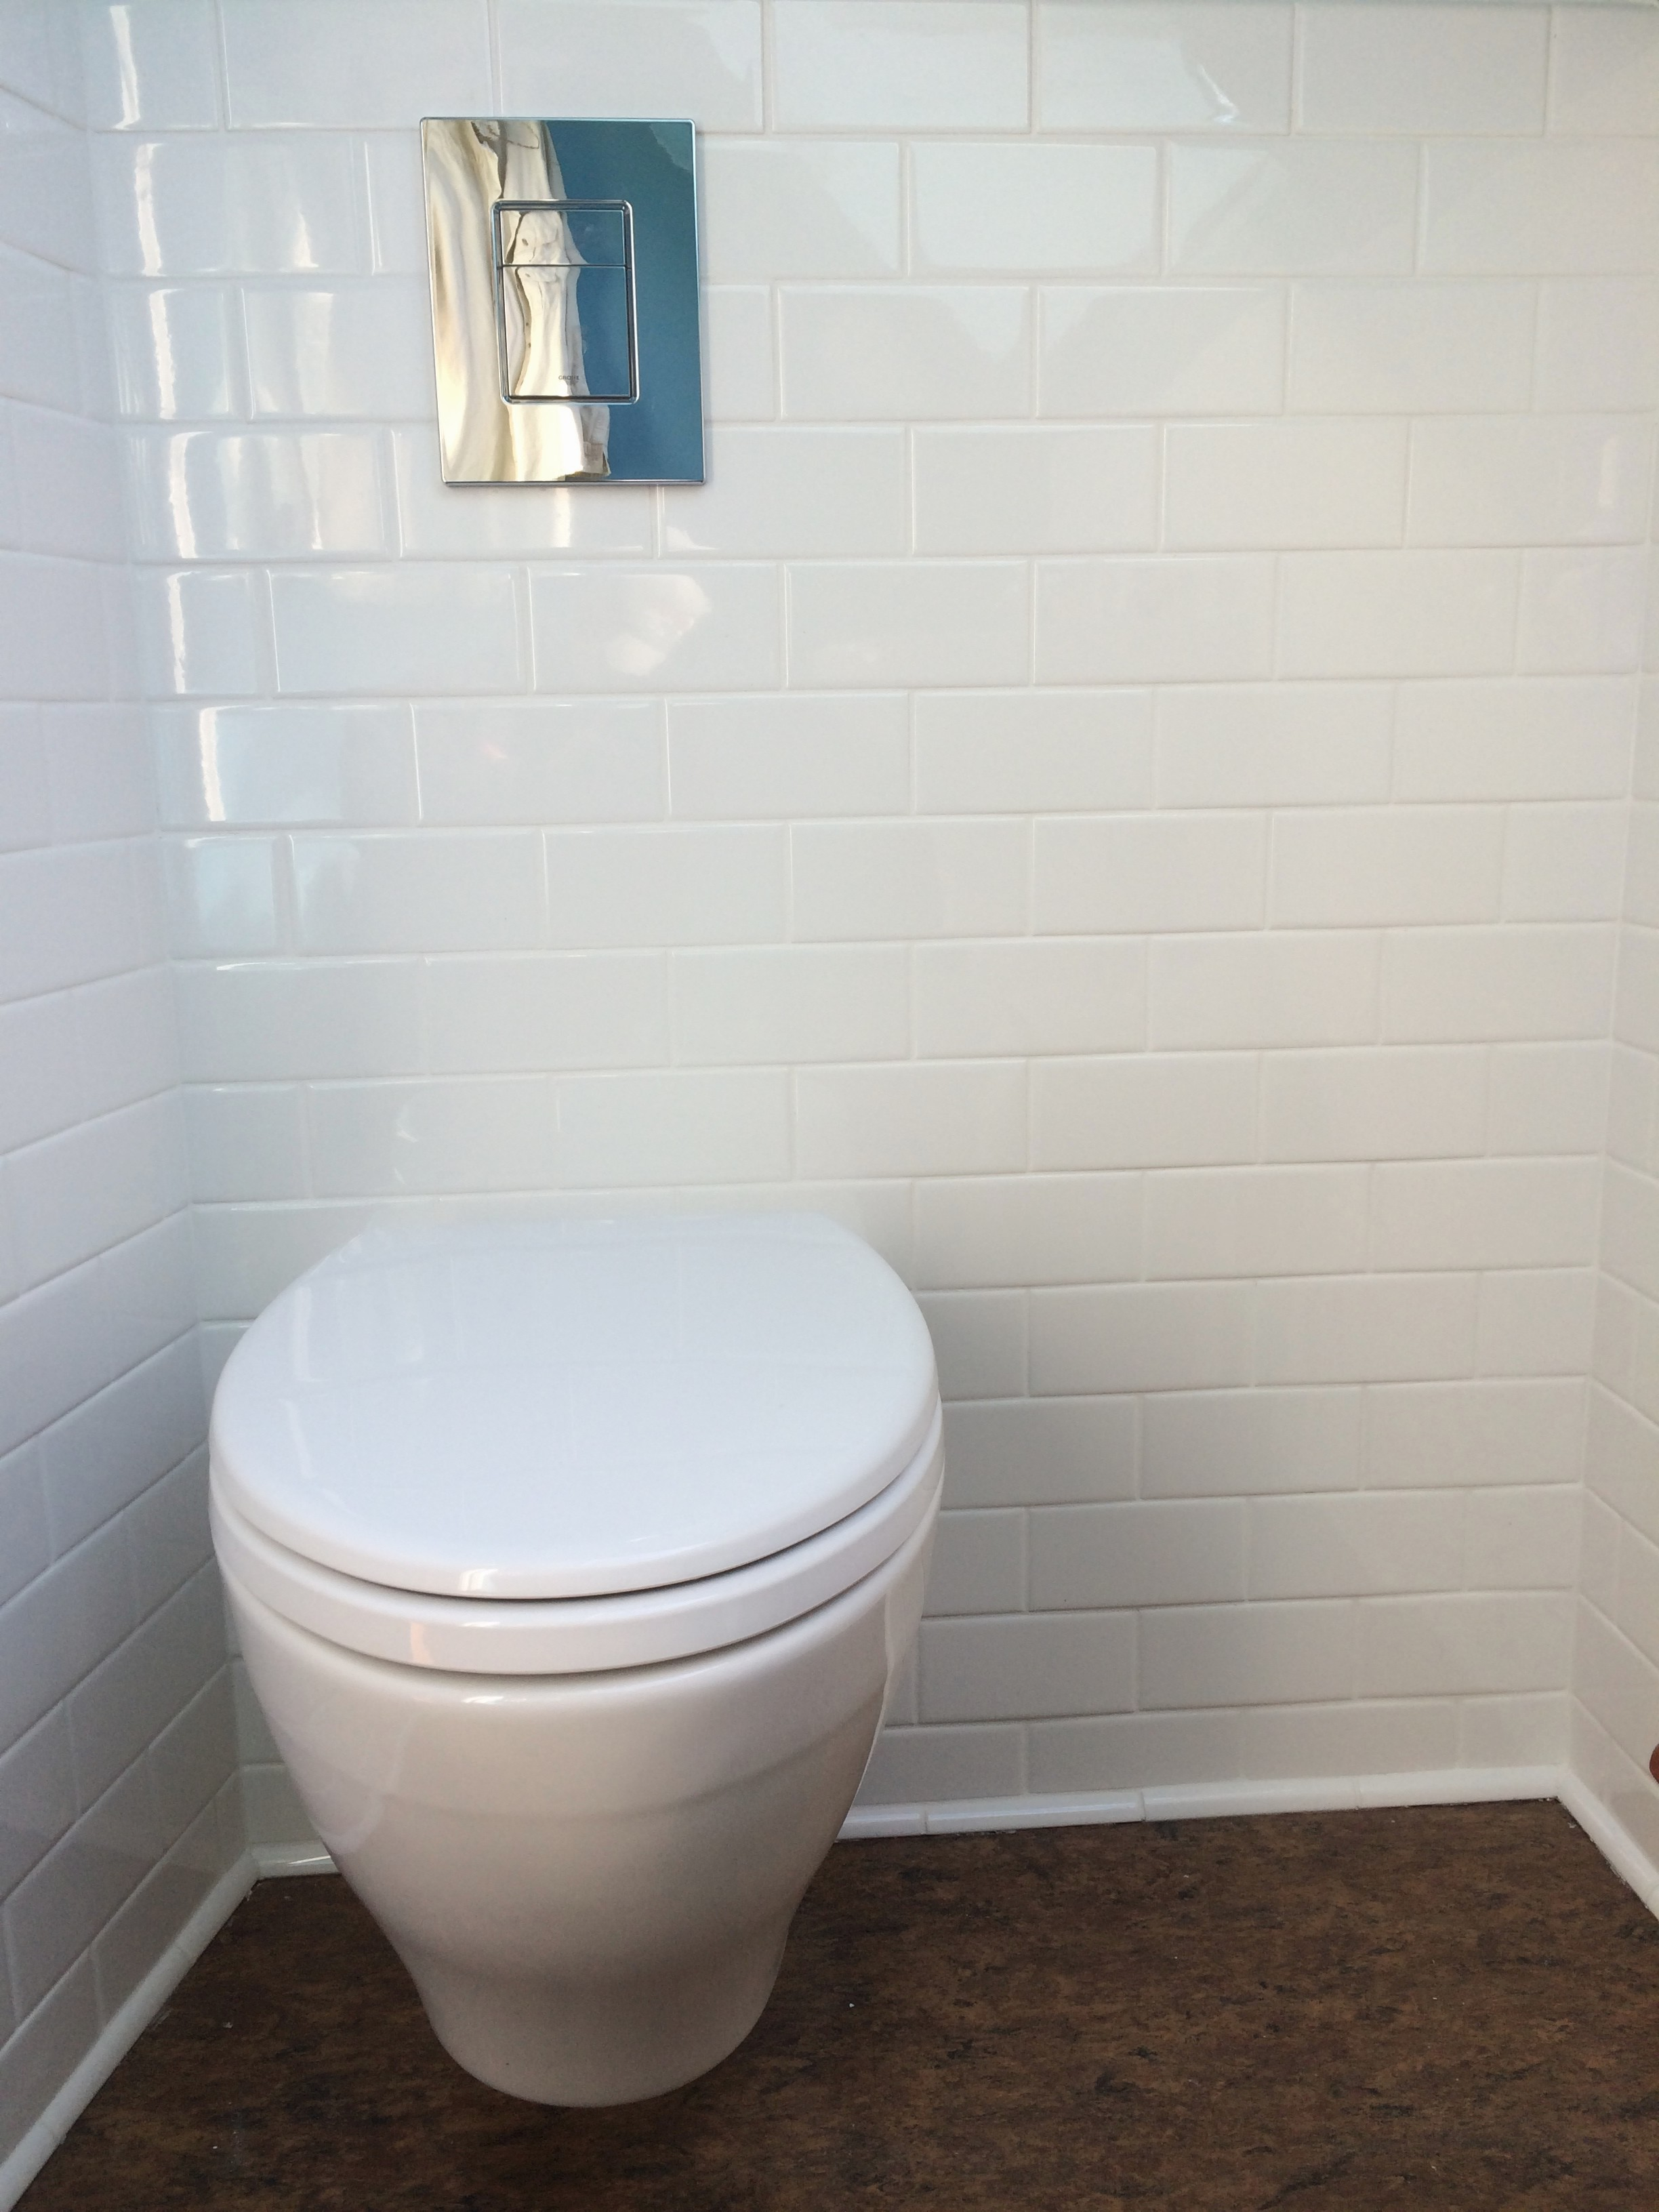 Wall mounted toilet with water tank concealed inside wall - Callaway ...